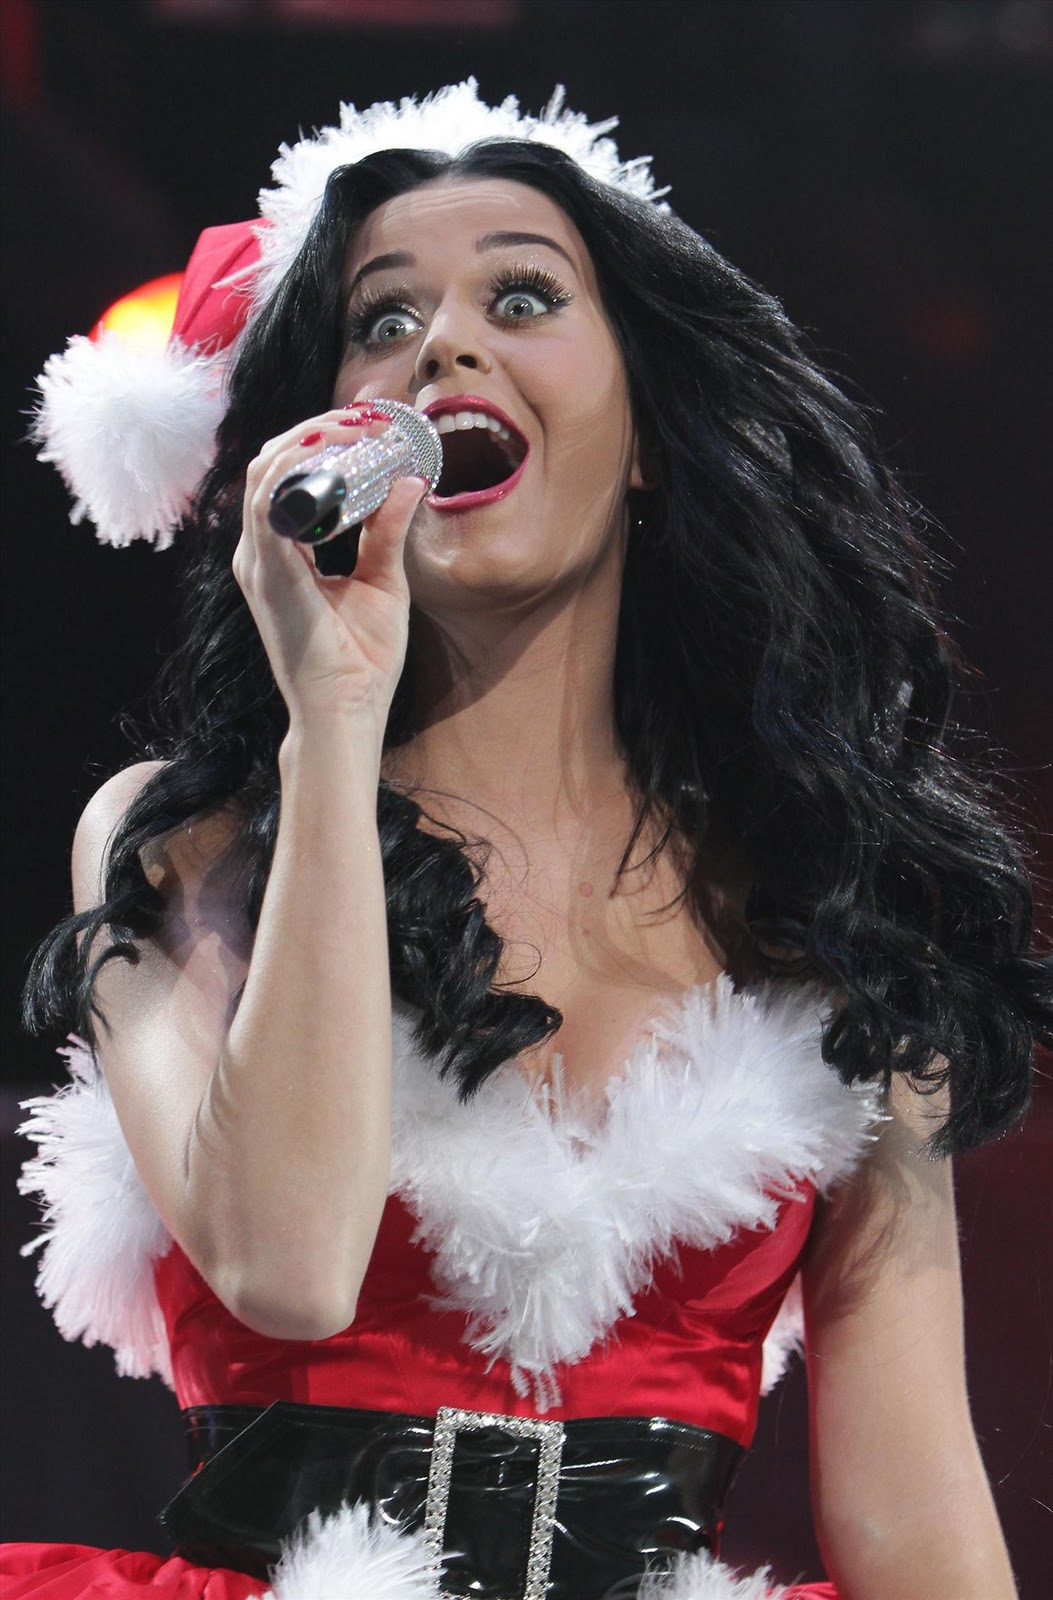 http://1.bp.blogspot.com/_Bo8ISOFbneI/TQVCaNXagCI/AAAAAAAABQw/aFdxWwIlhHE/s1600/www.expostas.com+Katy+Perry+-+Y100+Jingle+Ball+2010+at+BankAtlantic+Center+i_0017.jpg